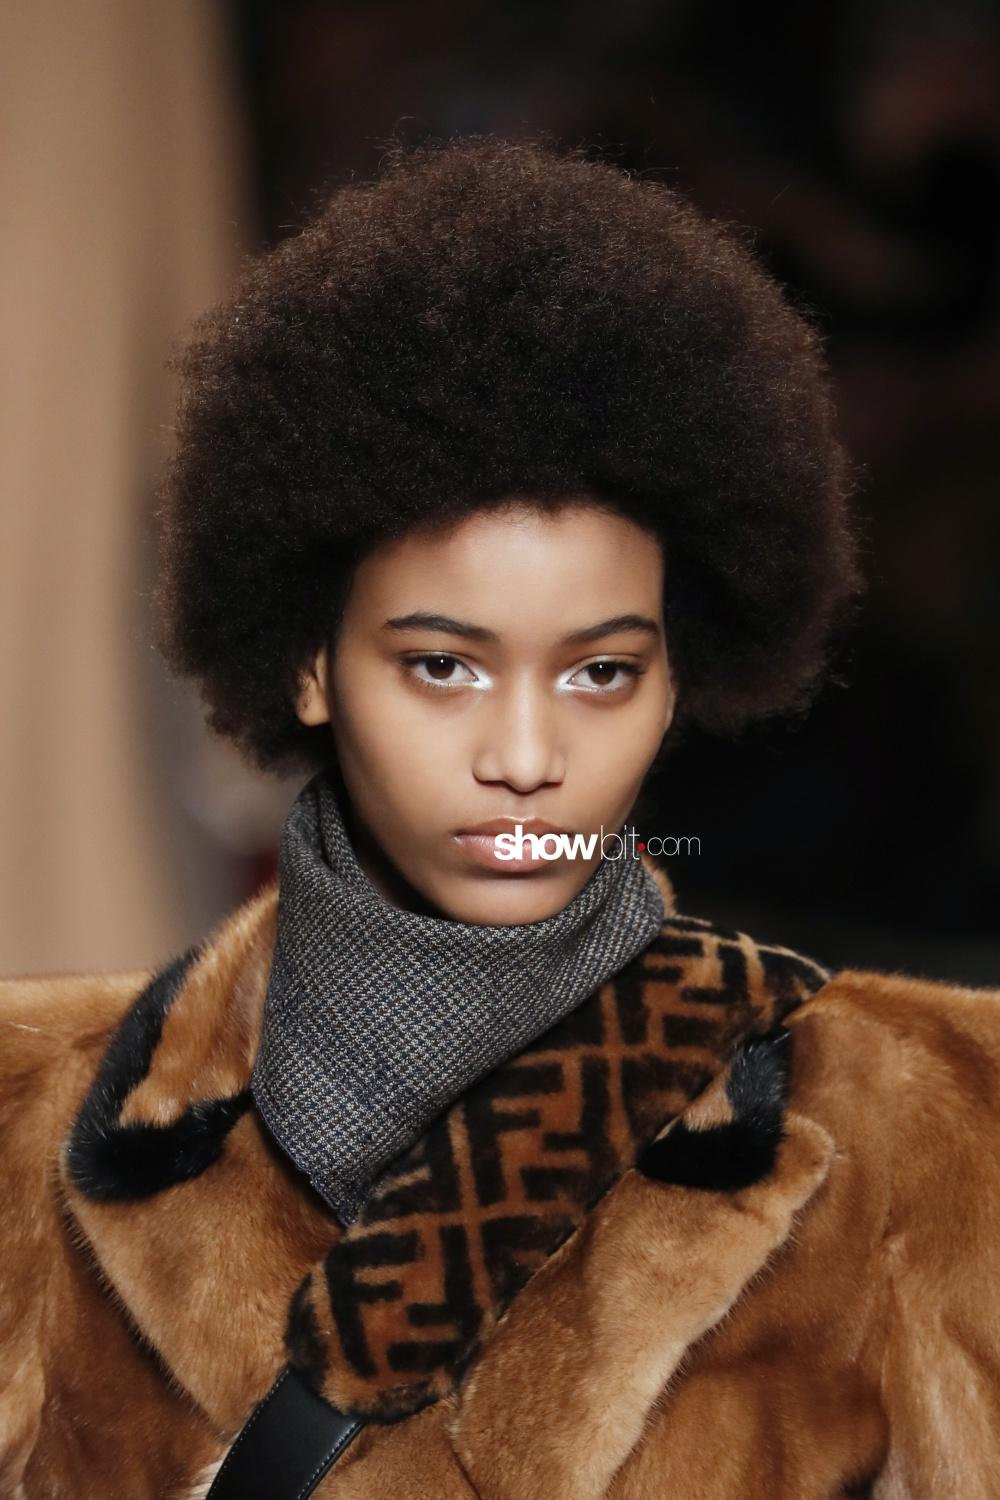 Fendi beauty runway Fall Winter 2018 Milano Manuela Sanchez